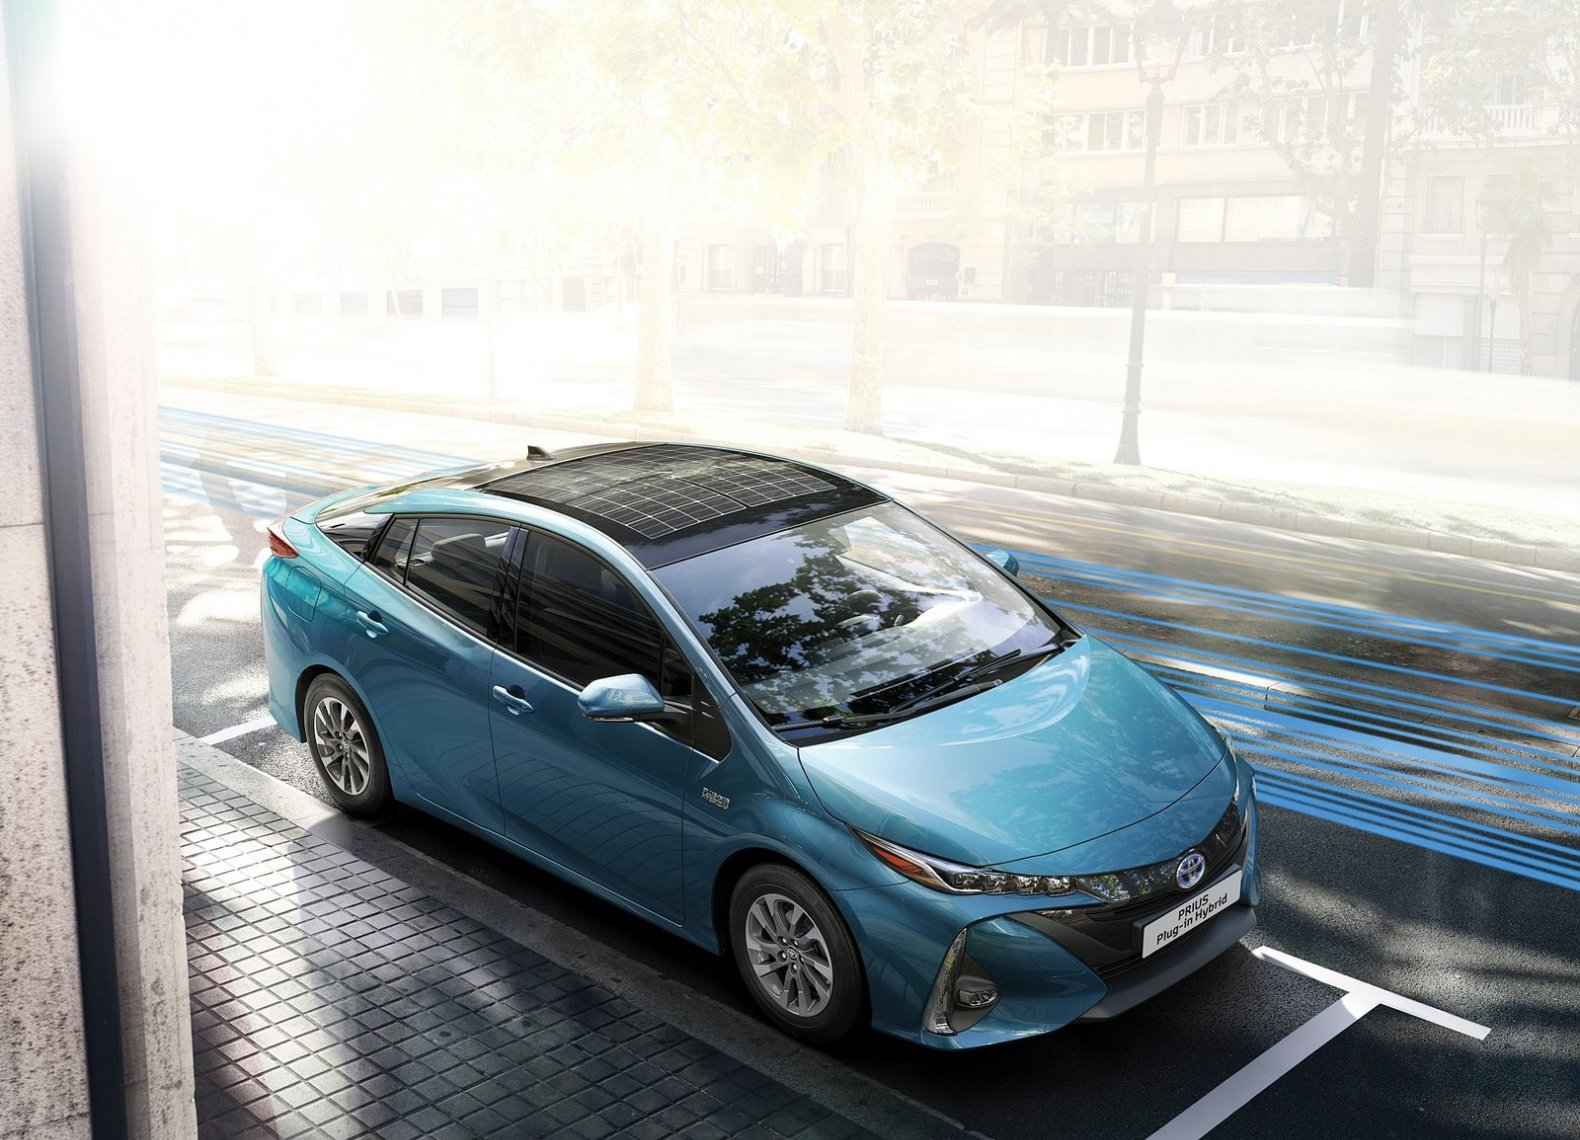 plug in hybrid 2 essay Official 2018 toyota prius prius prime site find a new, plug-in hybrid car at a toyota dealership near you, or build & price your own prius prime online today.